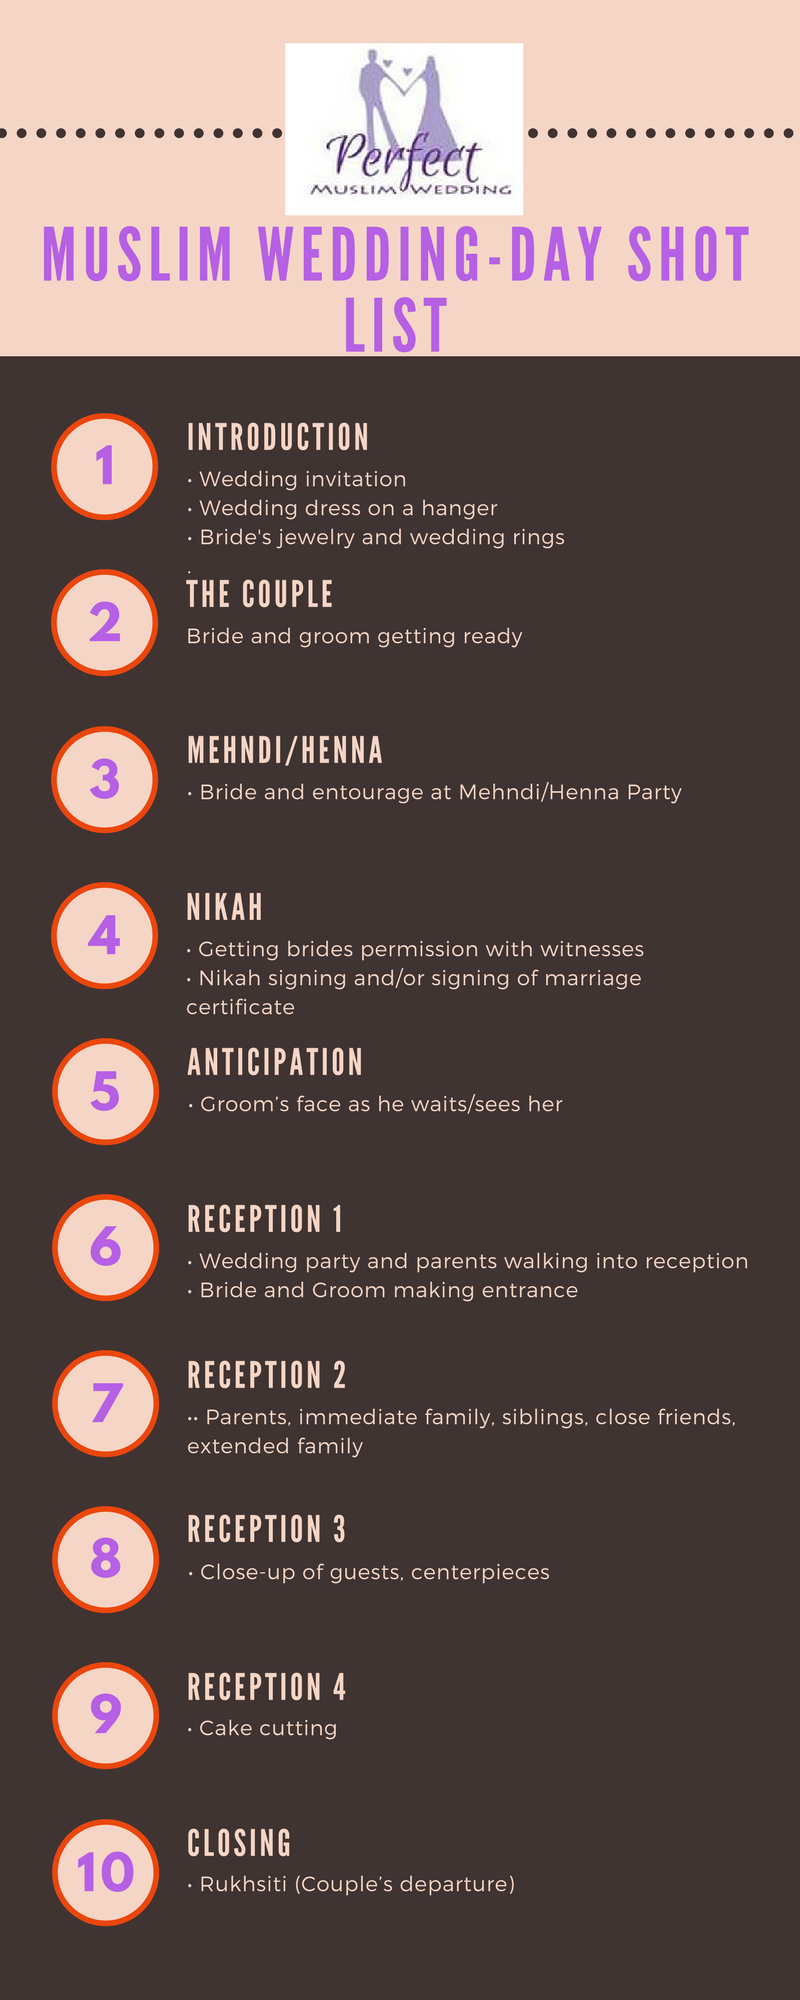 Muslim Wedding Day Shot List Infographic Everything From Getting